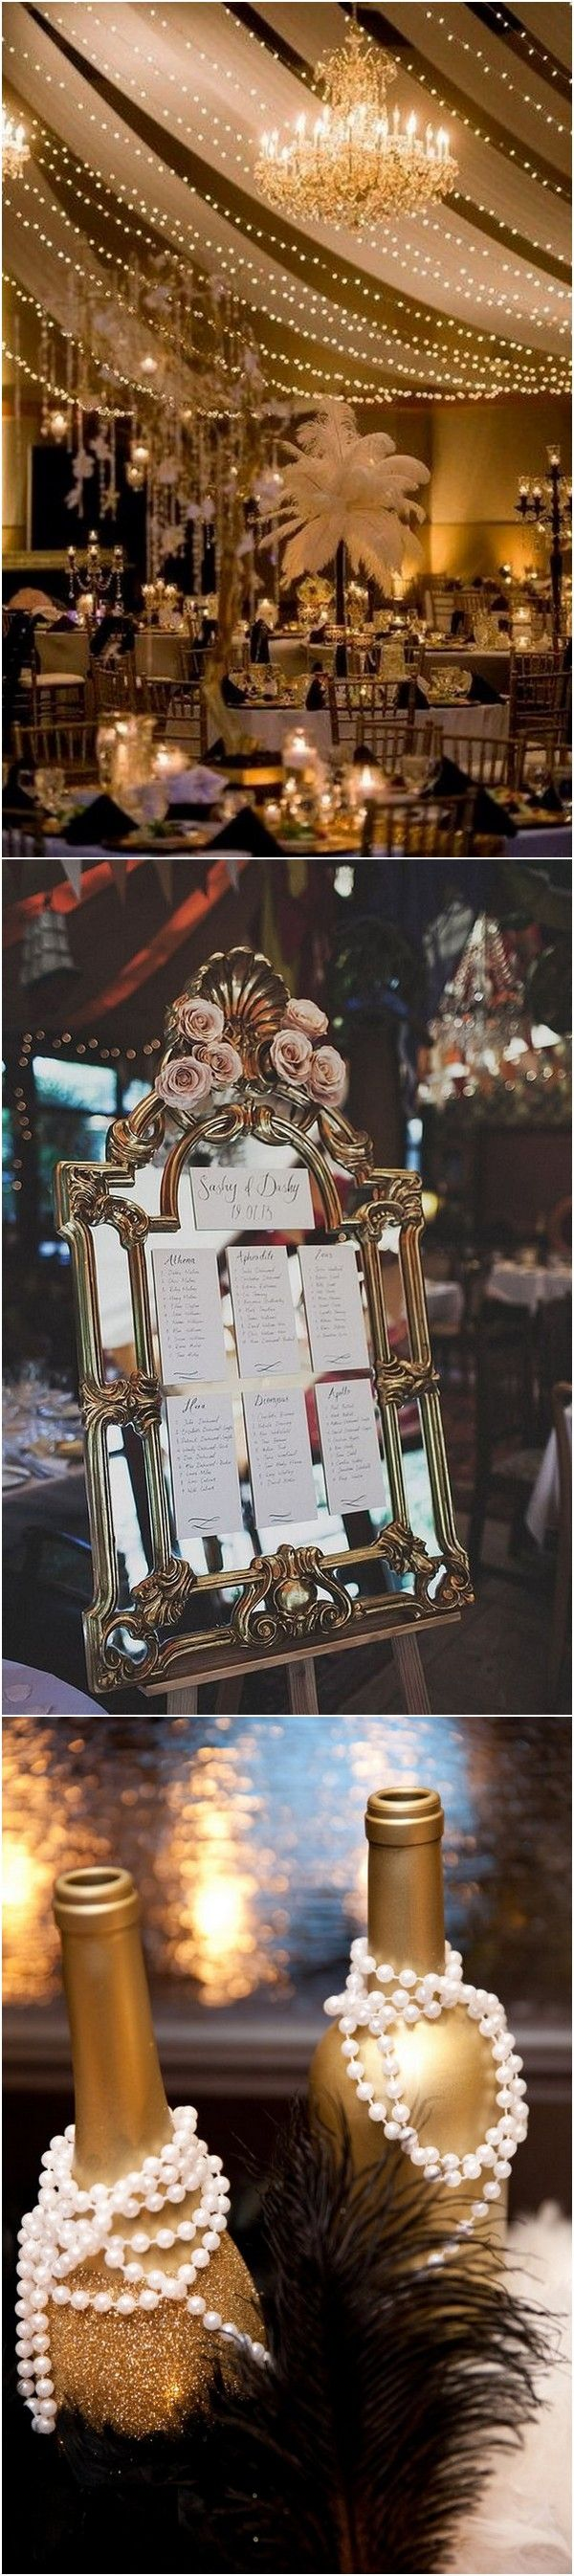 1920s wedding decoration ideas   best Elim Ball images on Pinterest  Birthdays Roaring s and